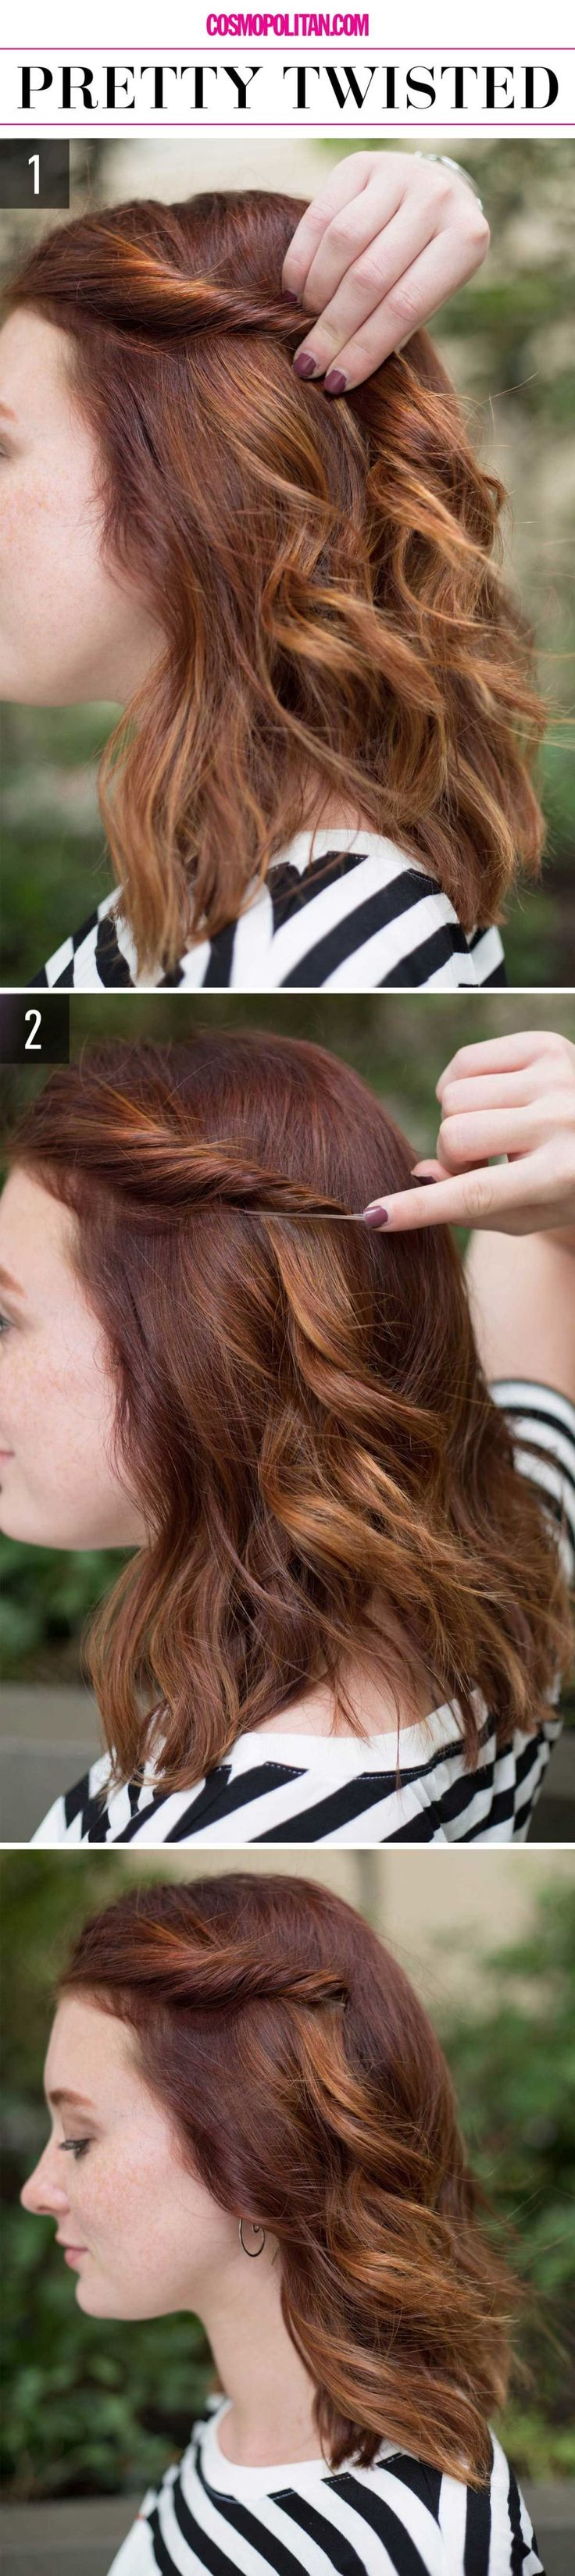 best hair styles that make me say wow images on pinterest make